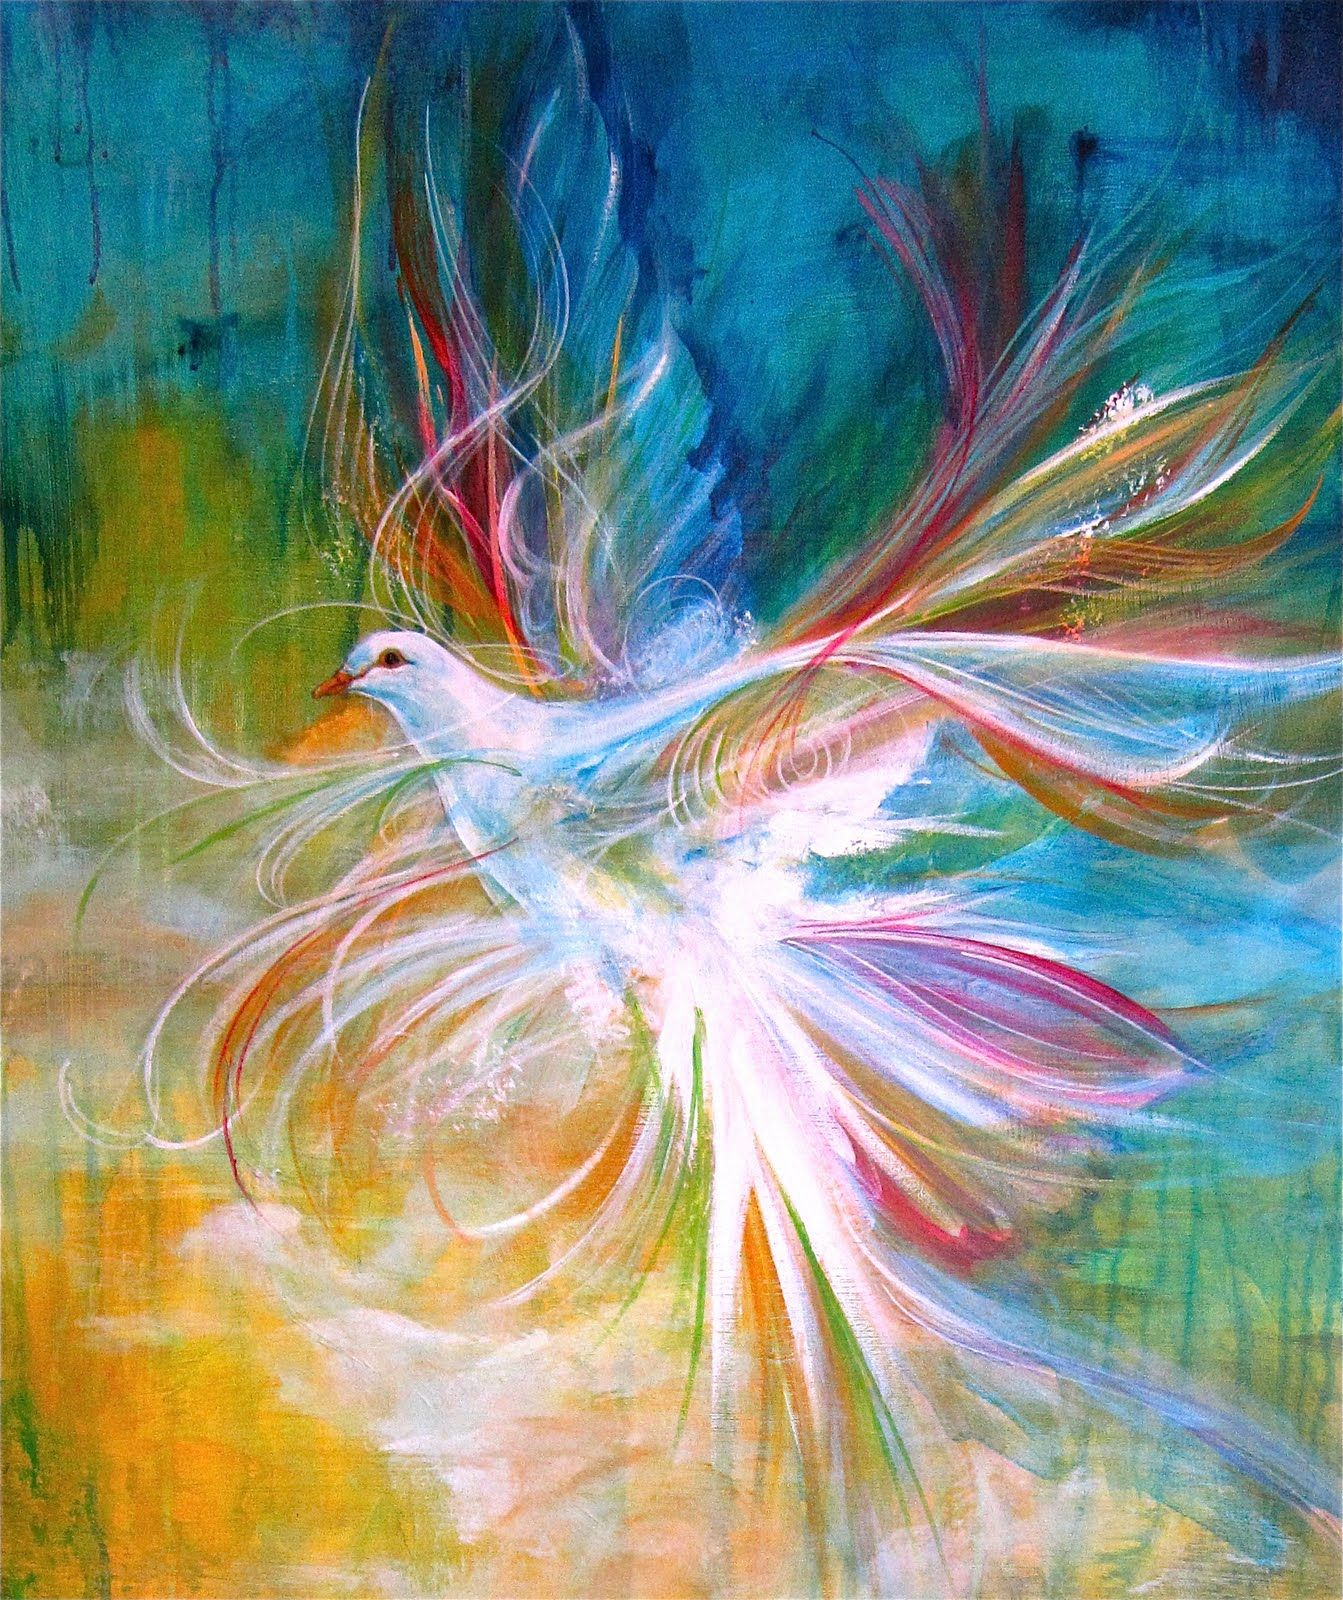 Just beautiful | Spiritual art, Holy spirit art, Worship art